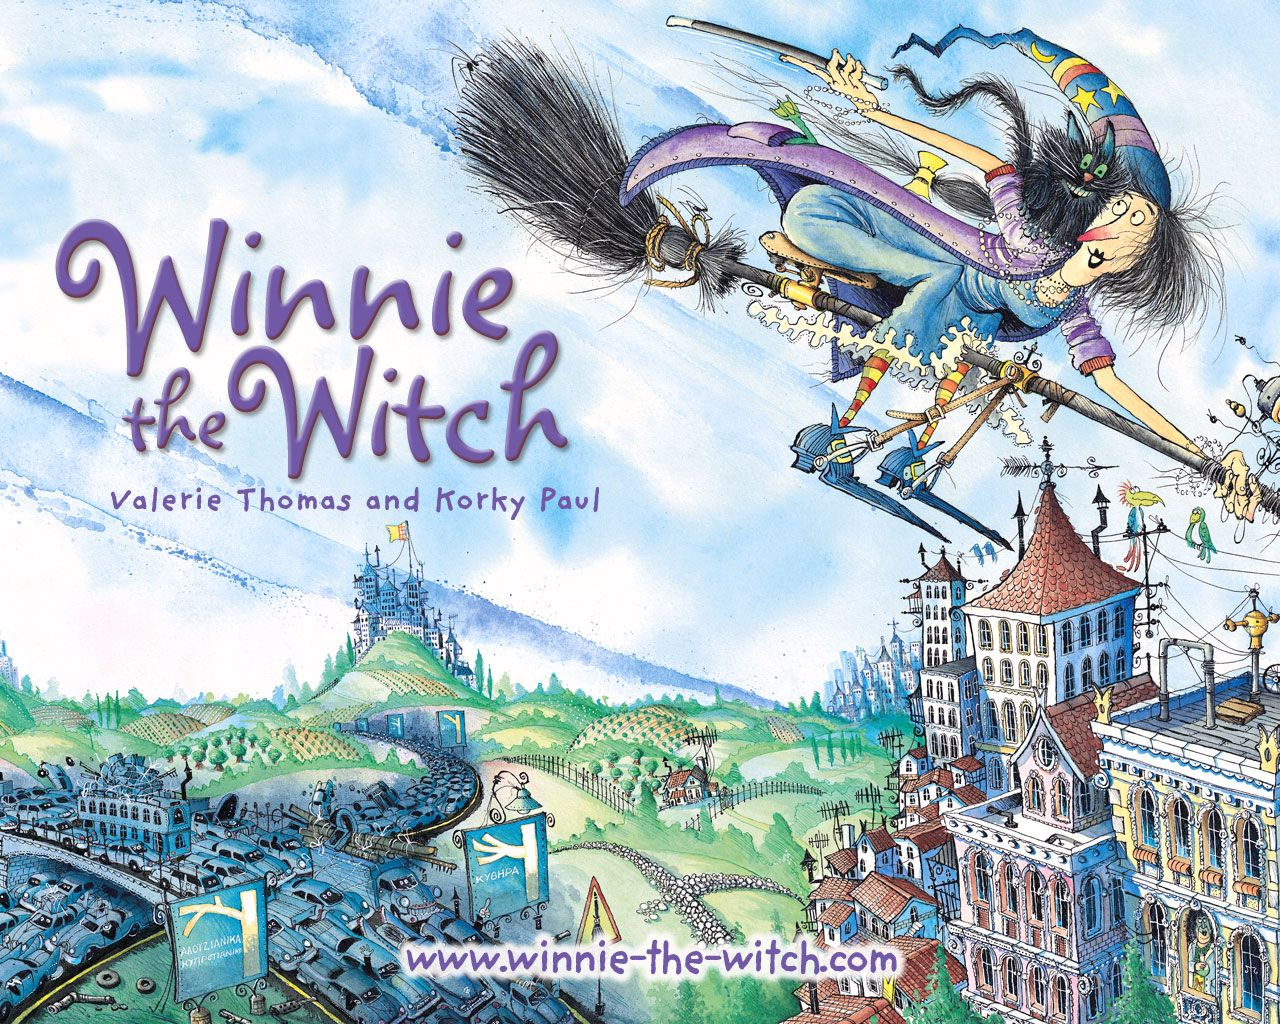 Http Www Winnie The Witch Com Flash Php Author